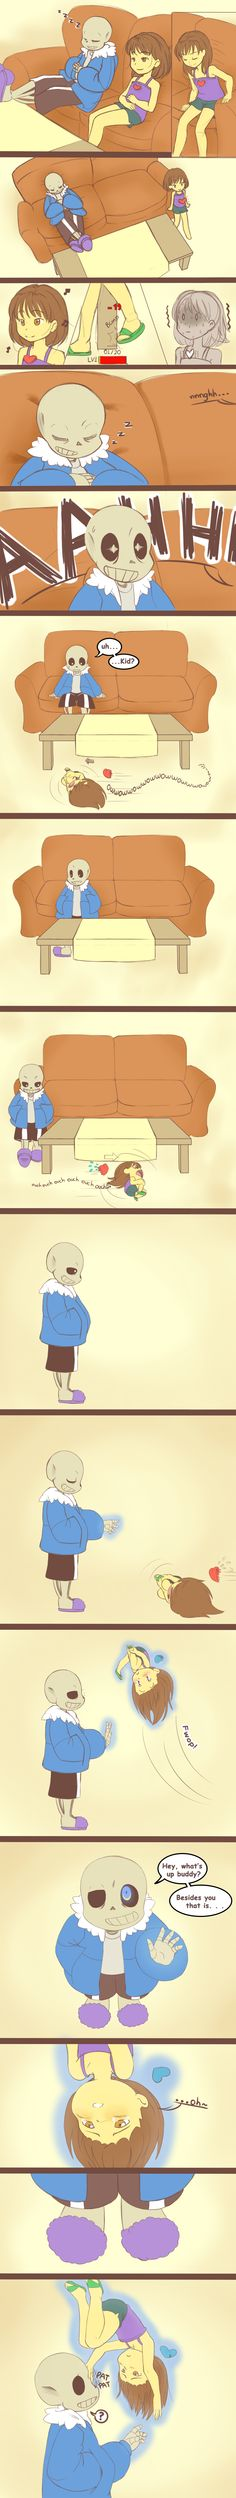 Frisk understands Sans a little better now. C'mon Frisk, no need to pitty him, he is well prepared. Inspired on this (plus the fact that I recently bumped my finger in the edge of bed and . Undertale Undertale, Toby Fox, Chibi, Underswap, Fan Art, The Villain, Anime, Funny Comics, Nerdy